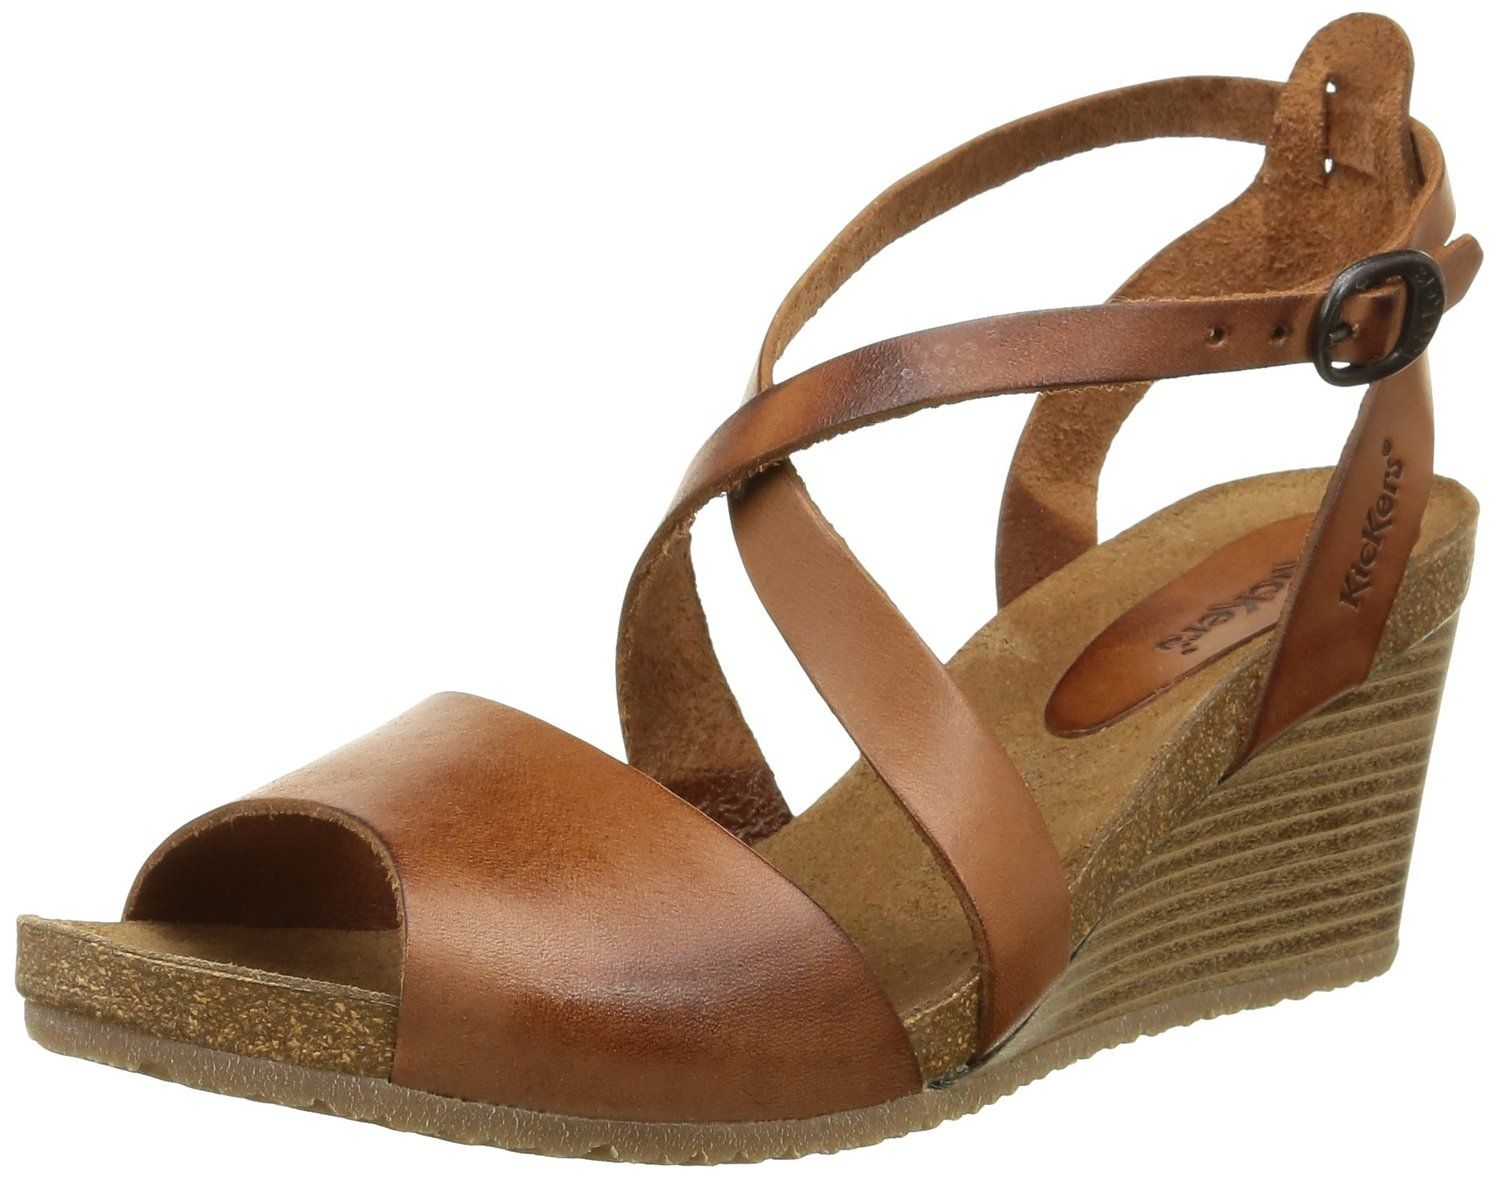 Spagnol, Womens Ankle Strap Sandals Kickers